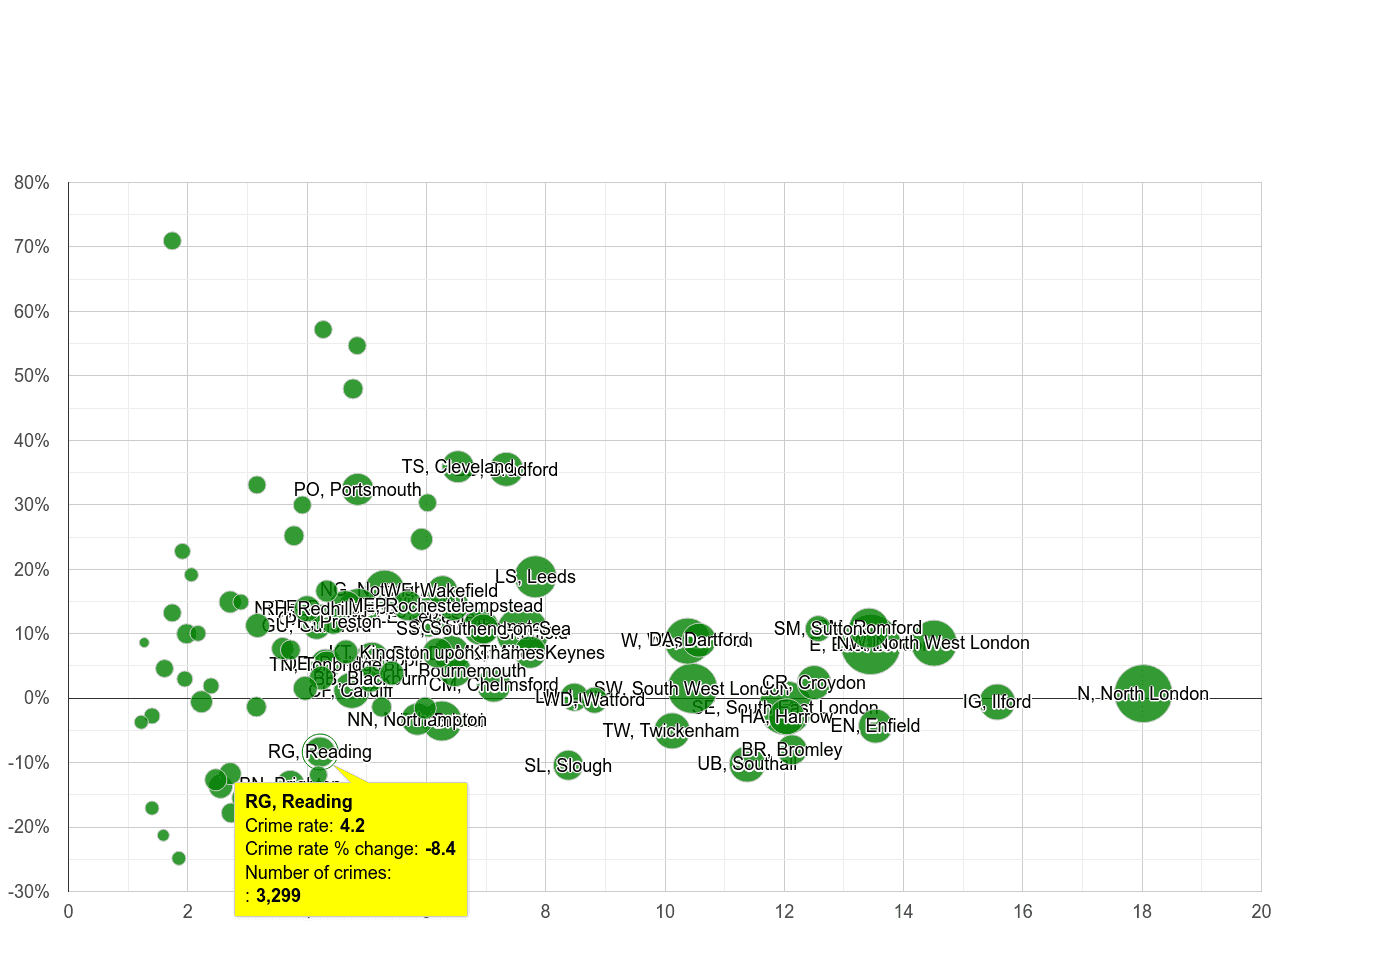 Reading vehicle crime rate compared to other areas